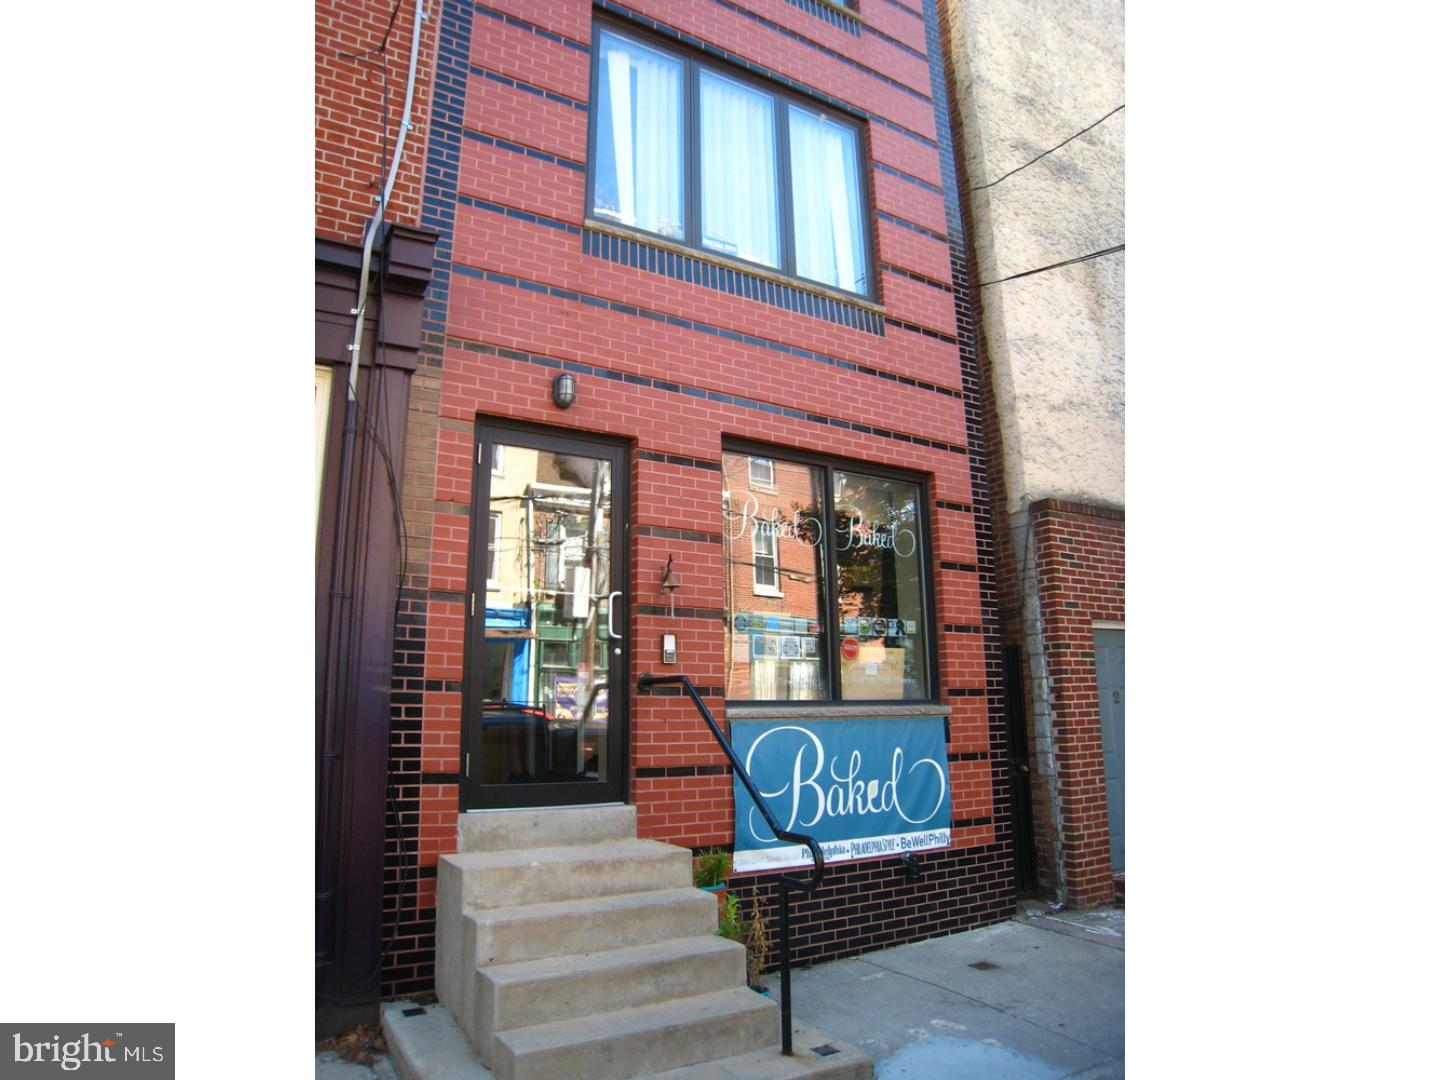 815 S 4th Street Philadelphia, PA 19147